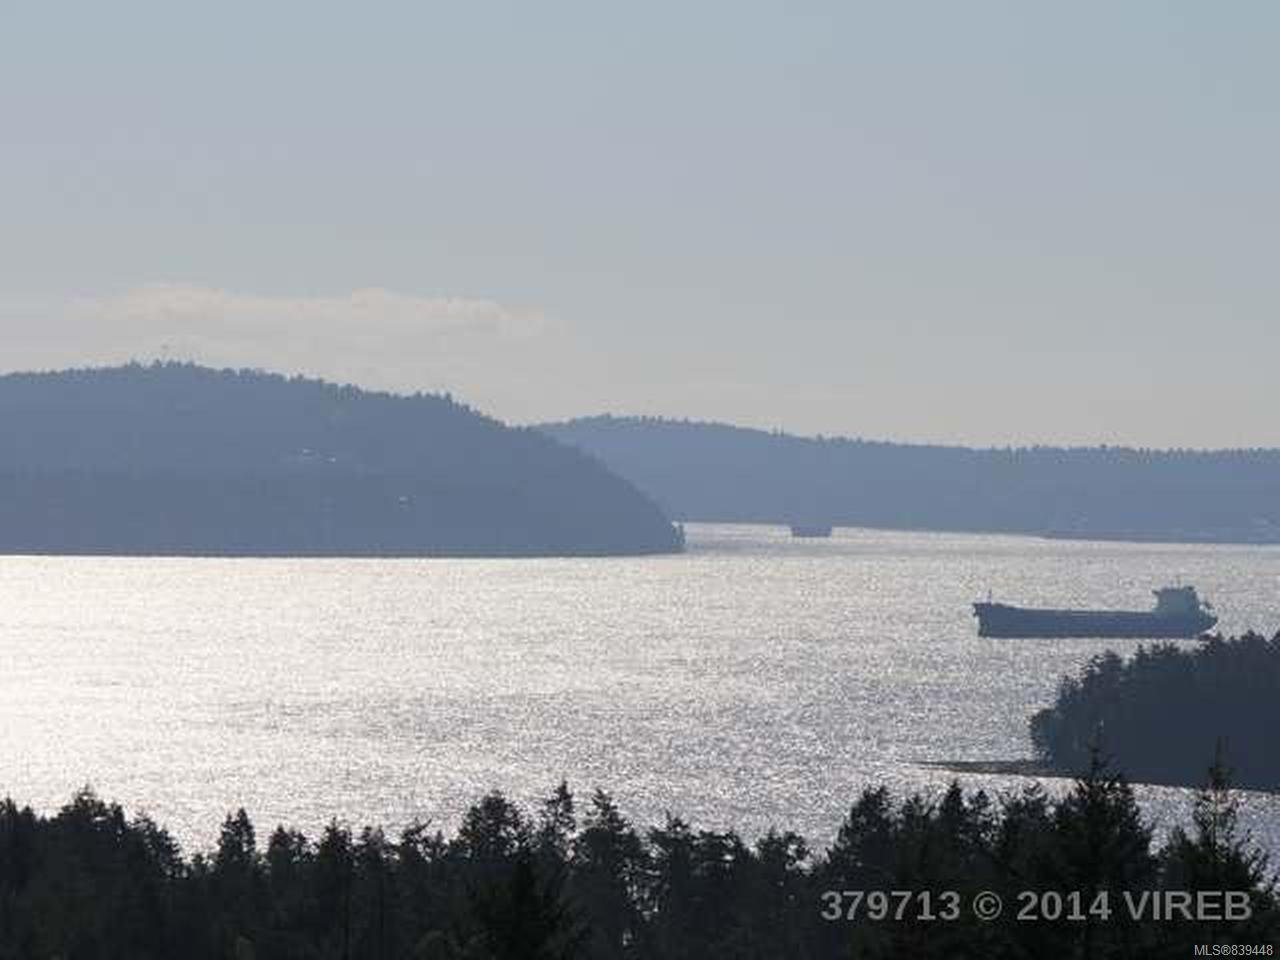 Main Photo: 3729 Belaire Dr in NANAIMO: Na Hammond Bay Single Family Detached for sale (Nanaimo)  : MLS®# 839448